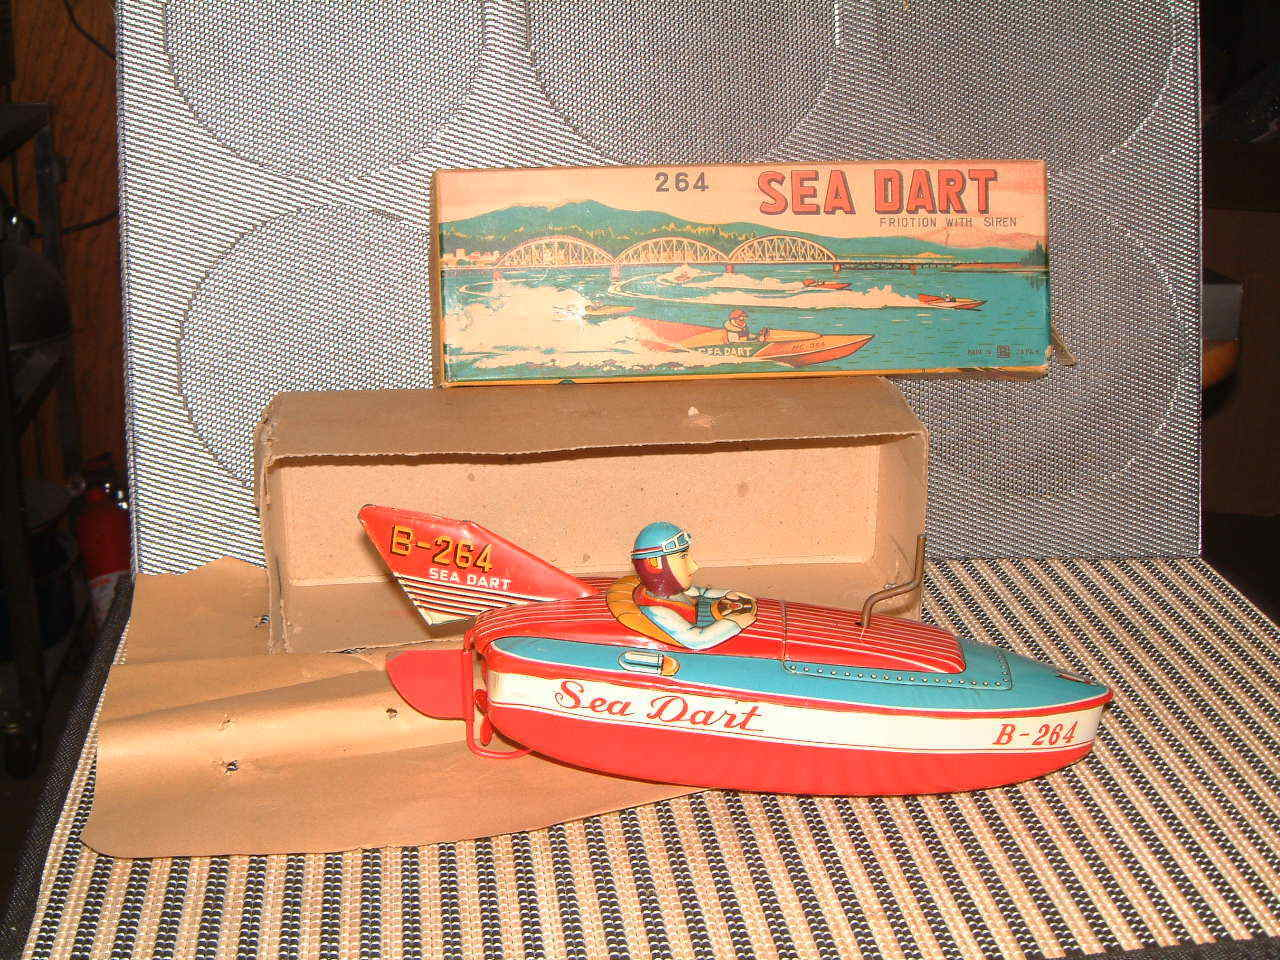 BANDAI NOS NOS NOS WIND-UP FRICTION DRIVEN SEA DART BOAT IN ORIGINAL BOX  NEVER USED  4aa02b